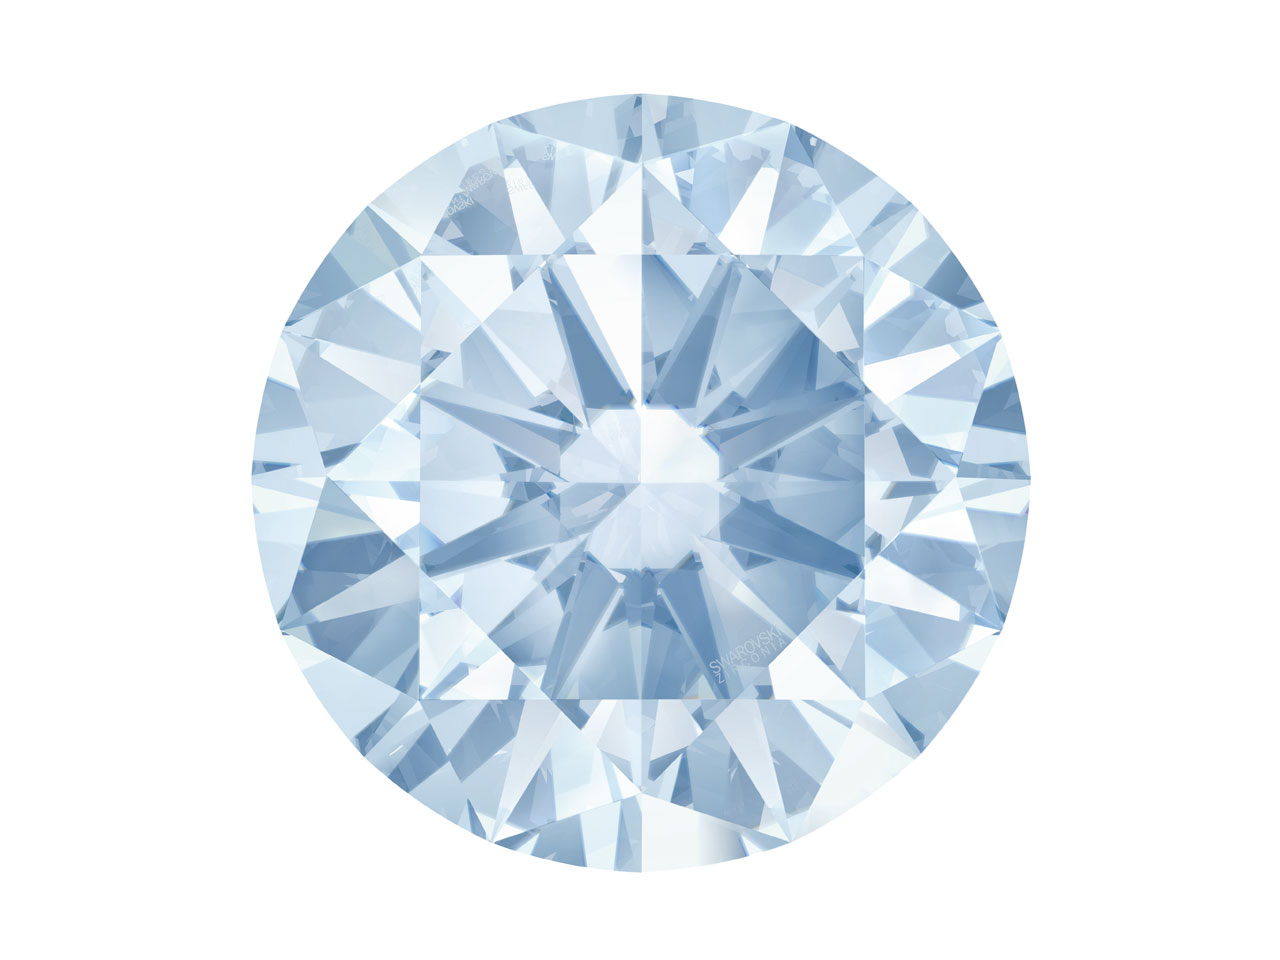 Swarovski Zirconia Round           Pure Brilliance Cut 6.5mm Greyish  Blue